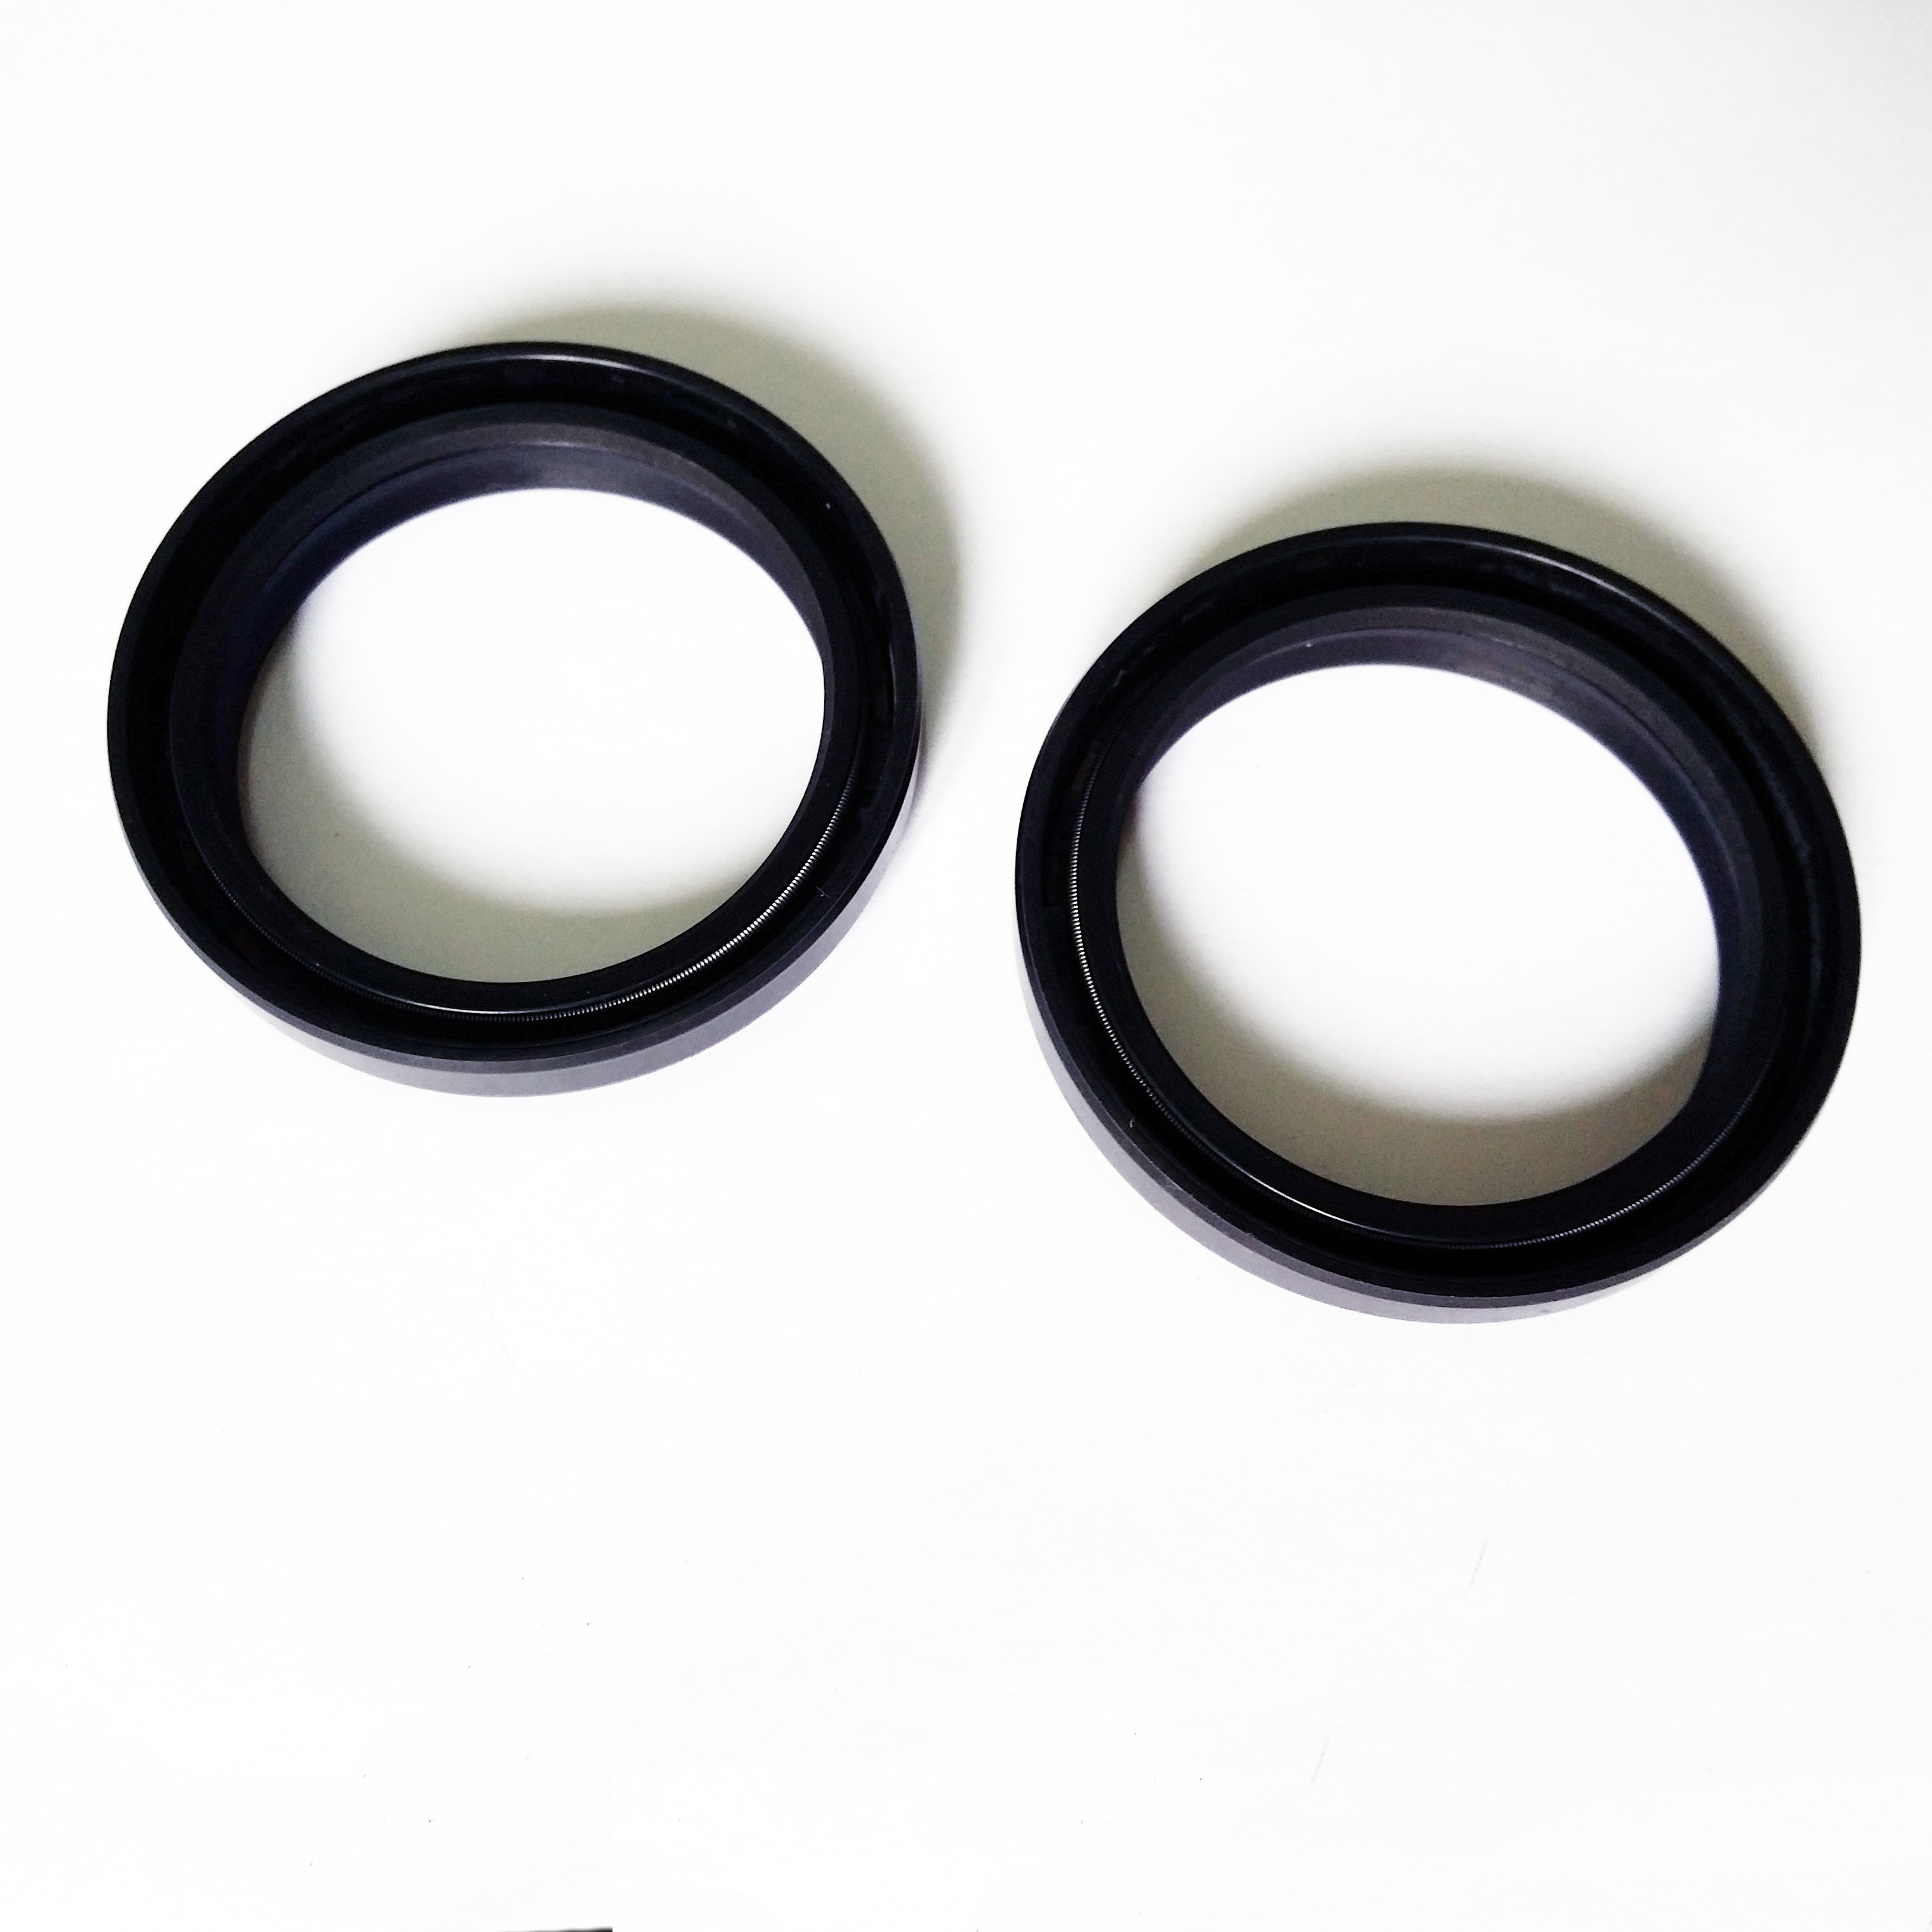 K-Tech KTM 85 SX 2004-2016 NOK Front Fork Oil Seals 43x53x9.5mm